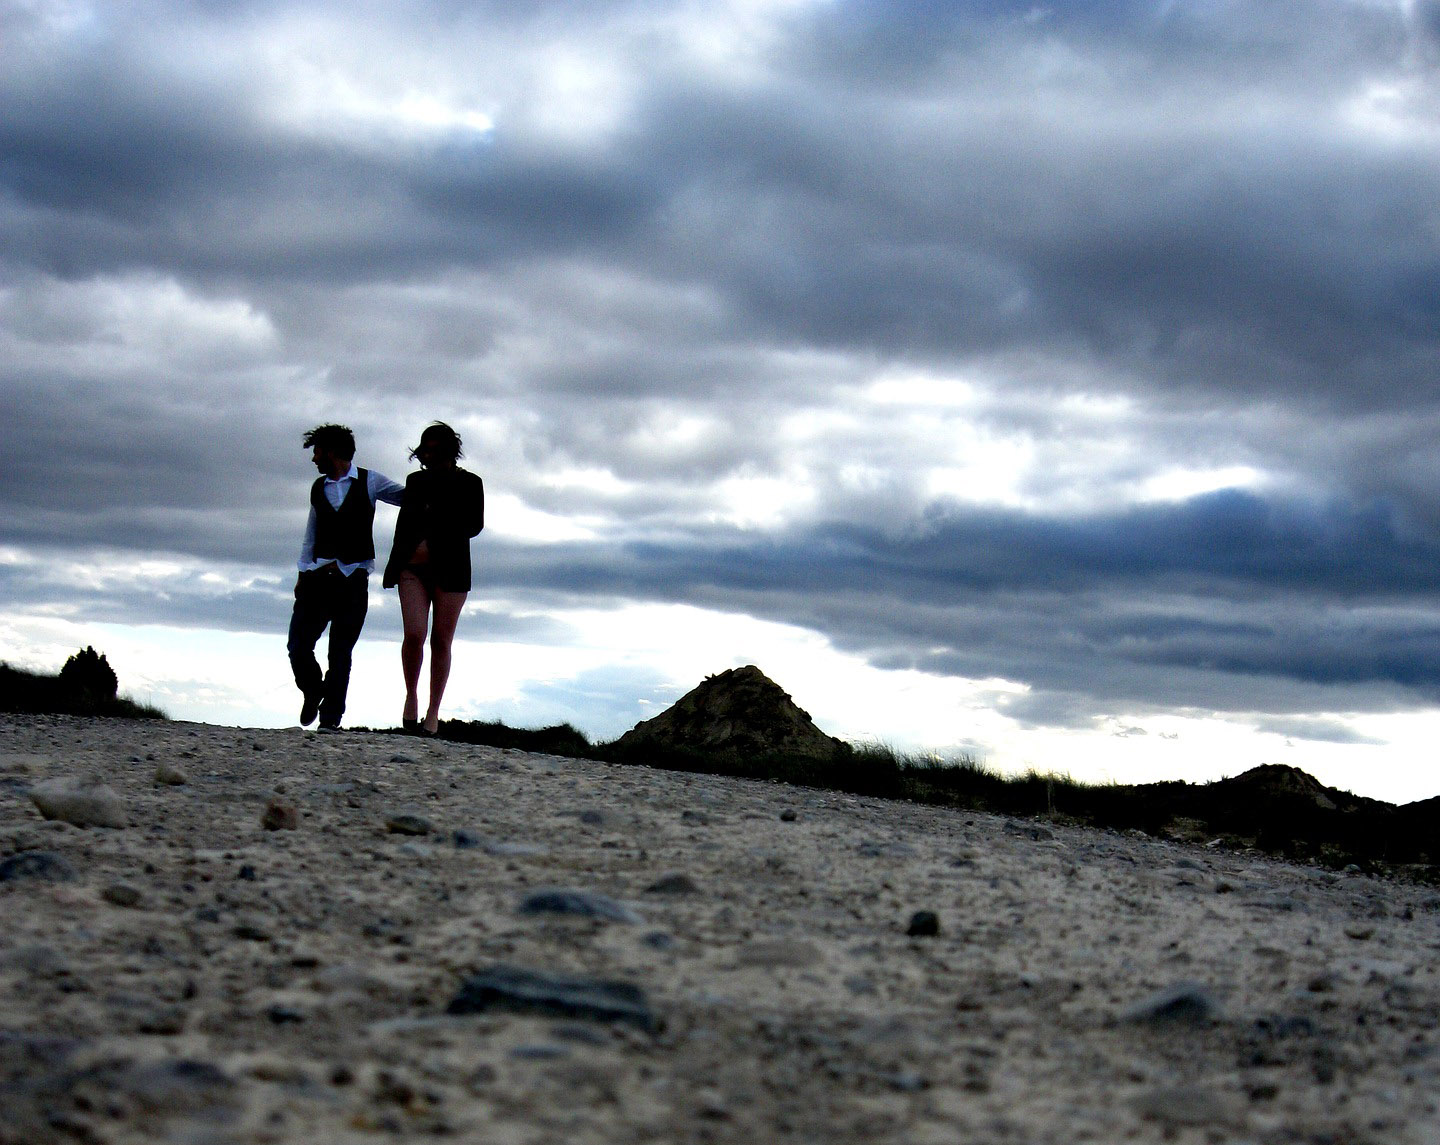 A couple walk across a barren desert landscape.